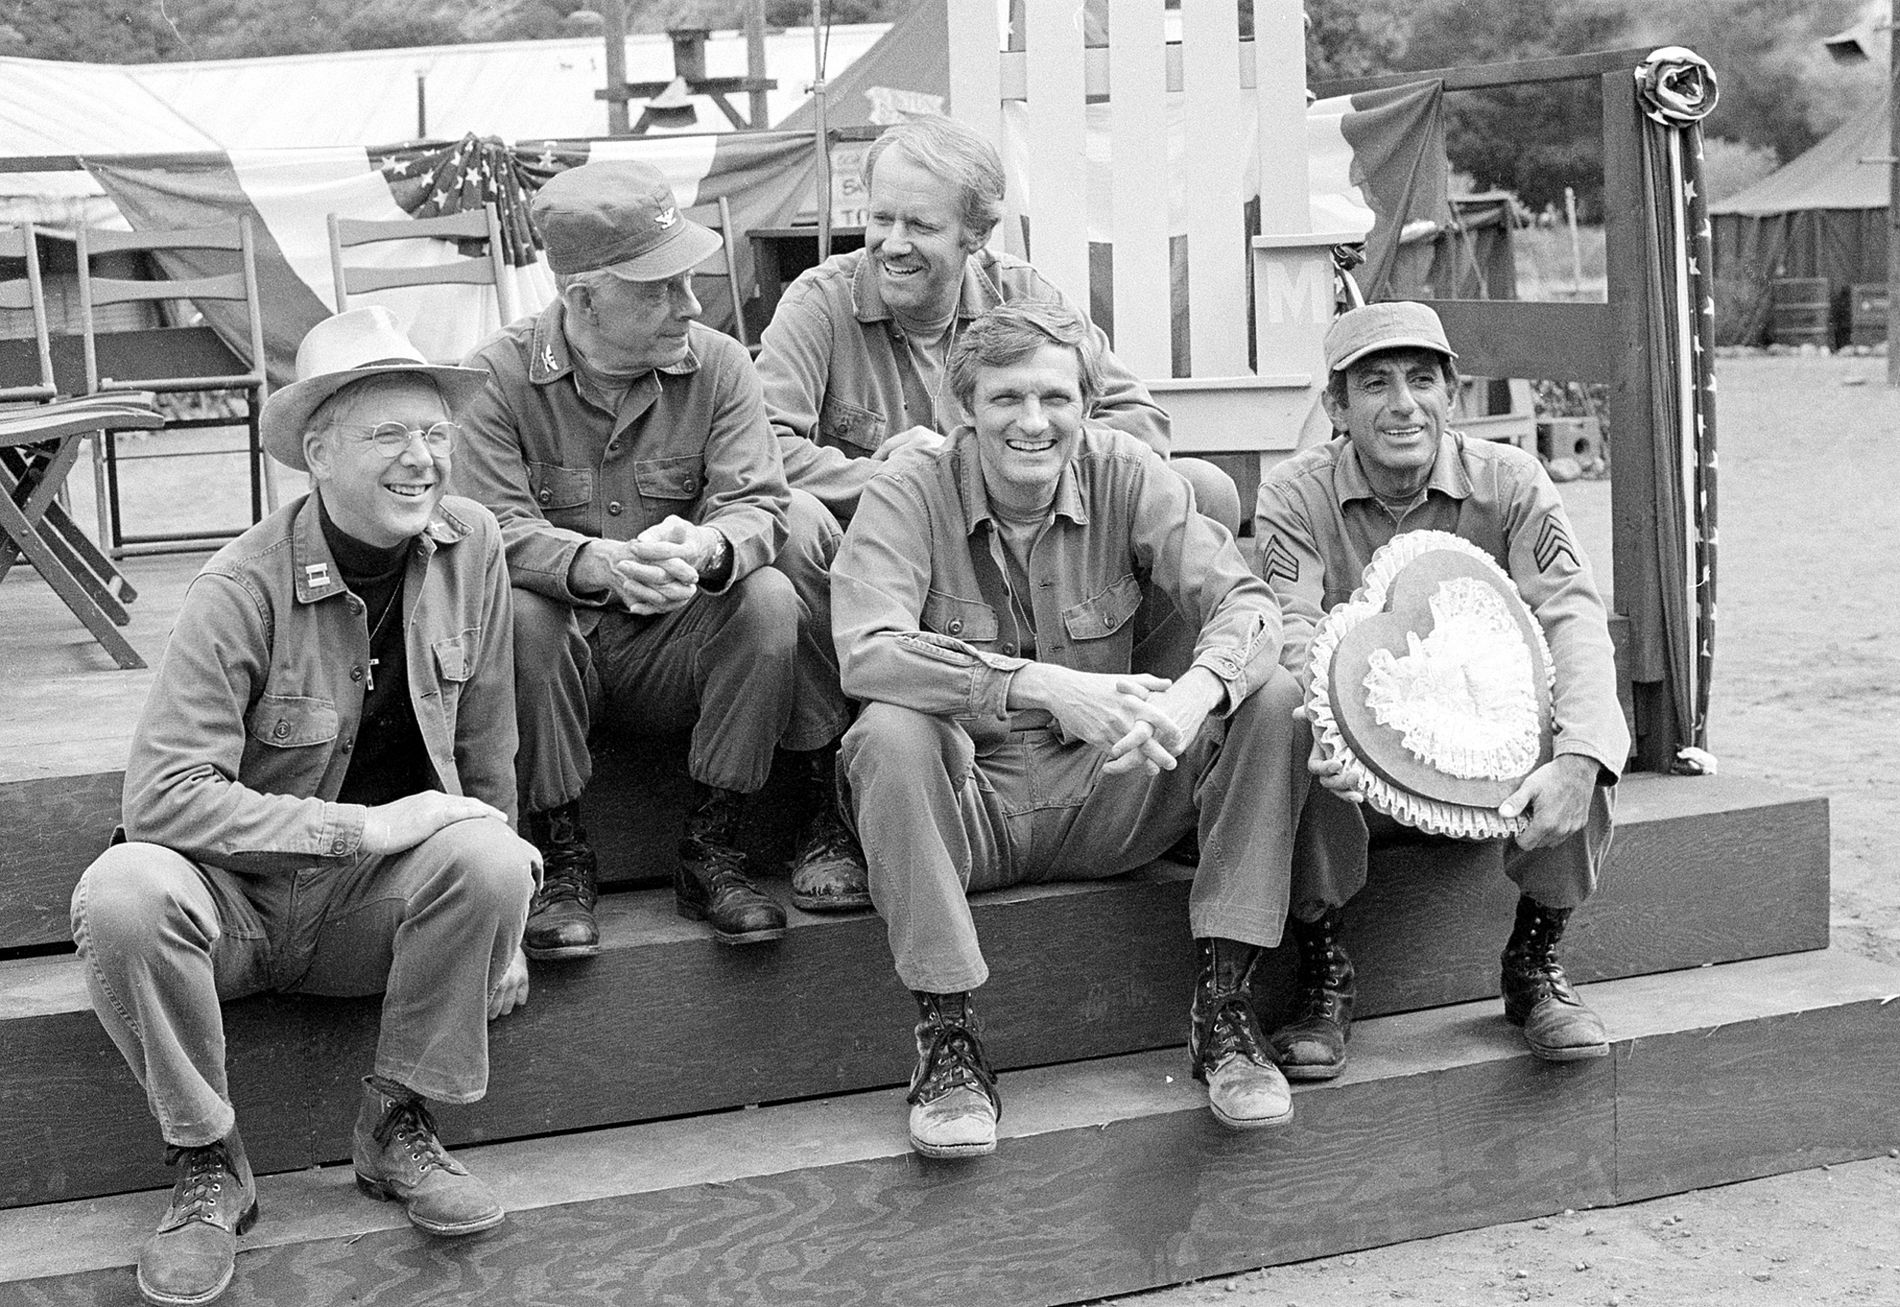 På SETTET: Skuespilleren i M*A*S*H slapper av under innspilling. Fra venstre: William Christopher, Harry Morgan, Mike Farrell, Alan Alda og Jamie Farr,